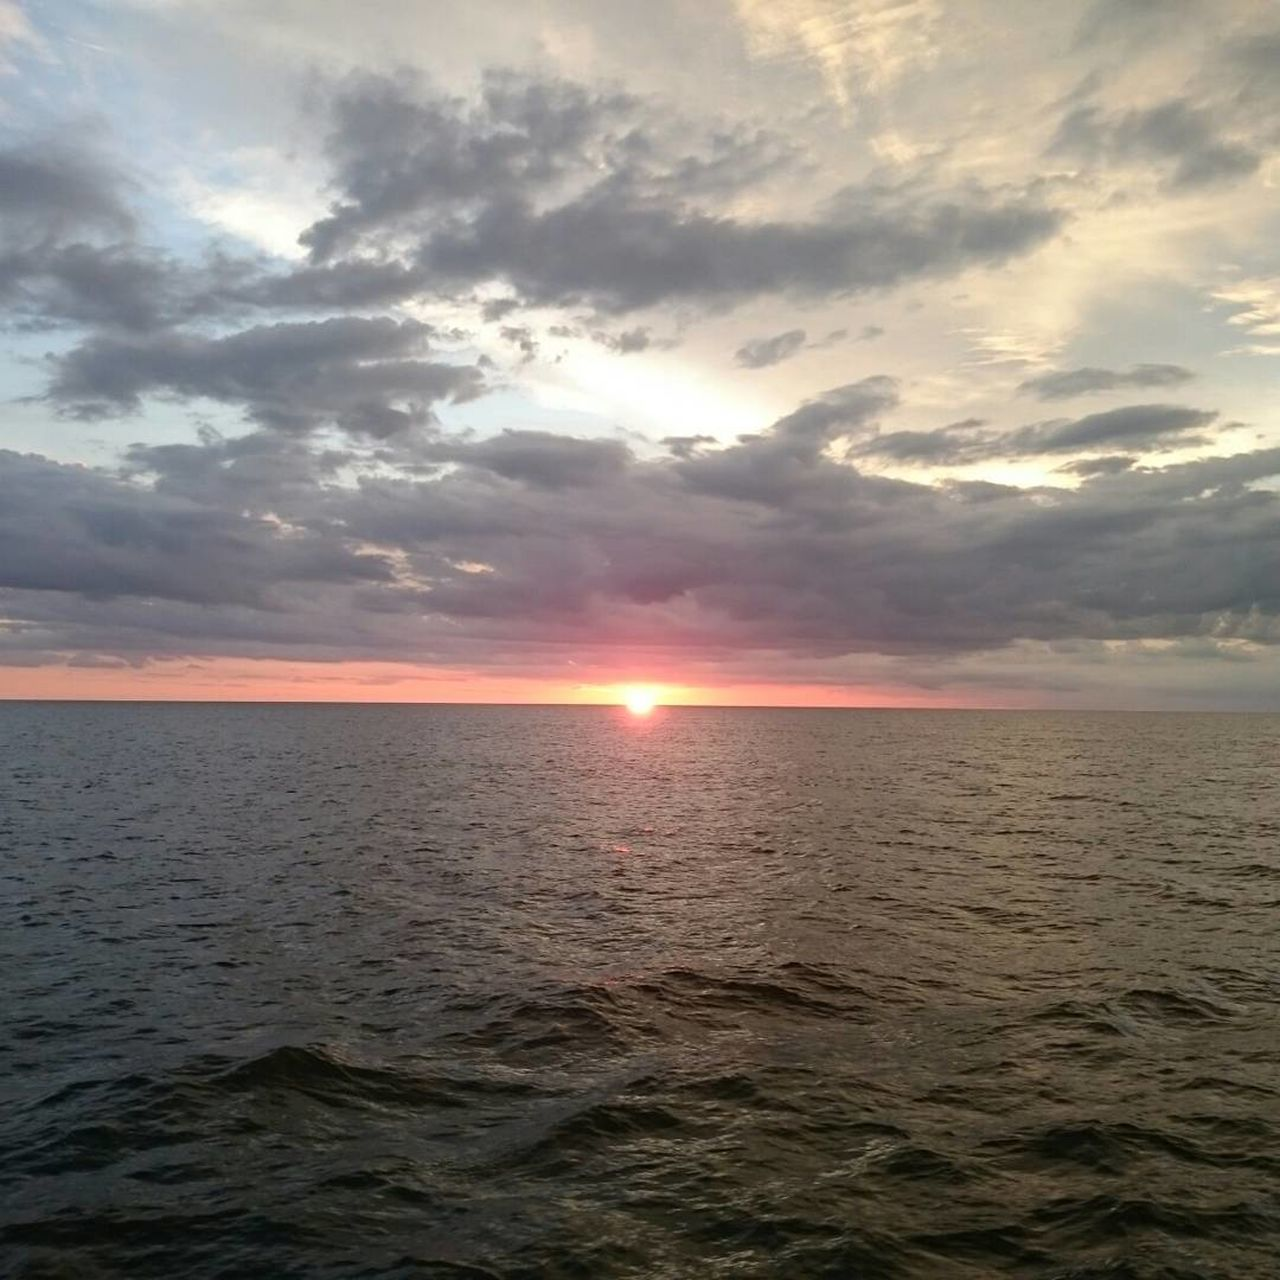 Sunset java sea Sea Sunset Sun Dramatic Sky Cloud - Sky Beach Tranquility Nature Awe Beauty In Nature Scenics Landscape Summer Sunlight Environment Weather Horizon Over Water Idyllic Majestic Social Issues